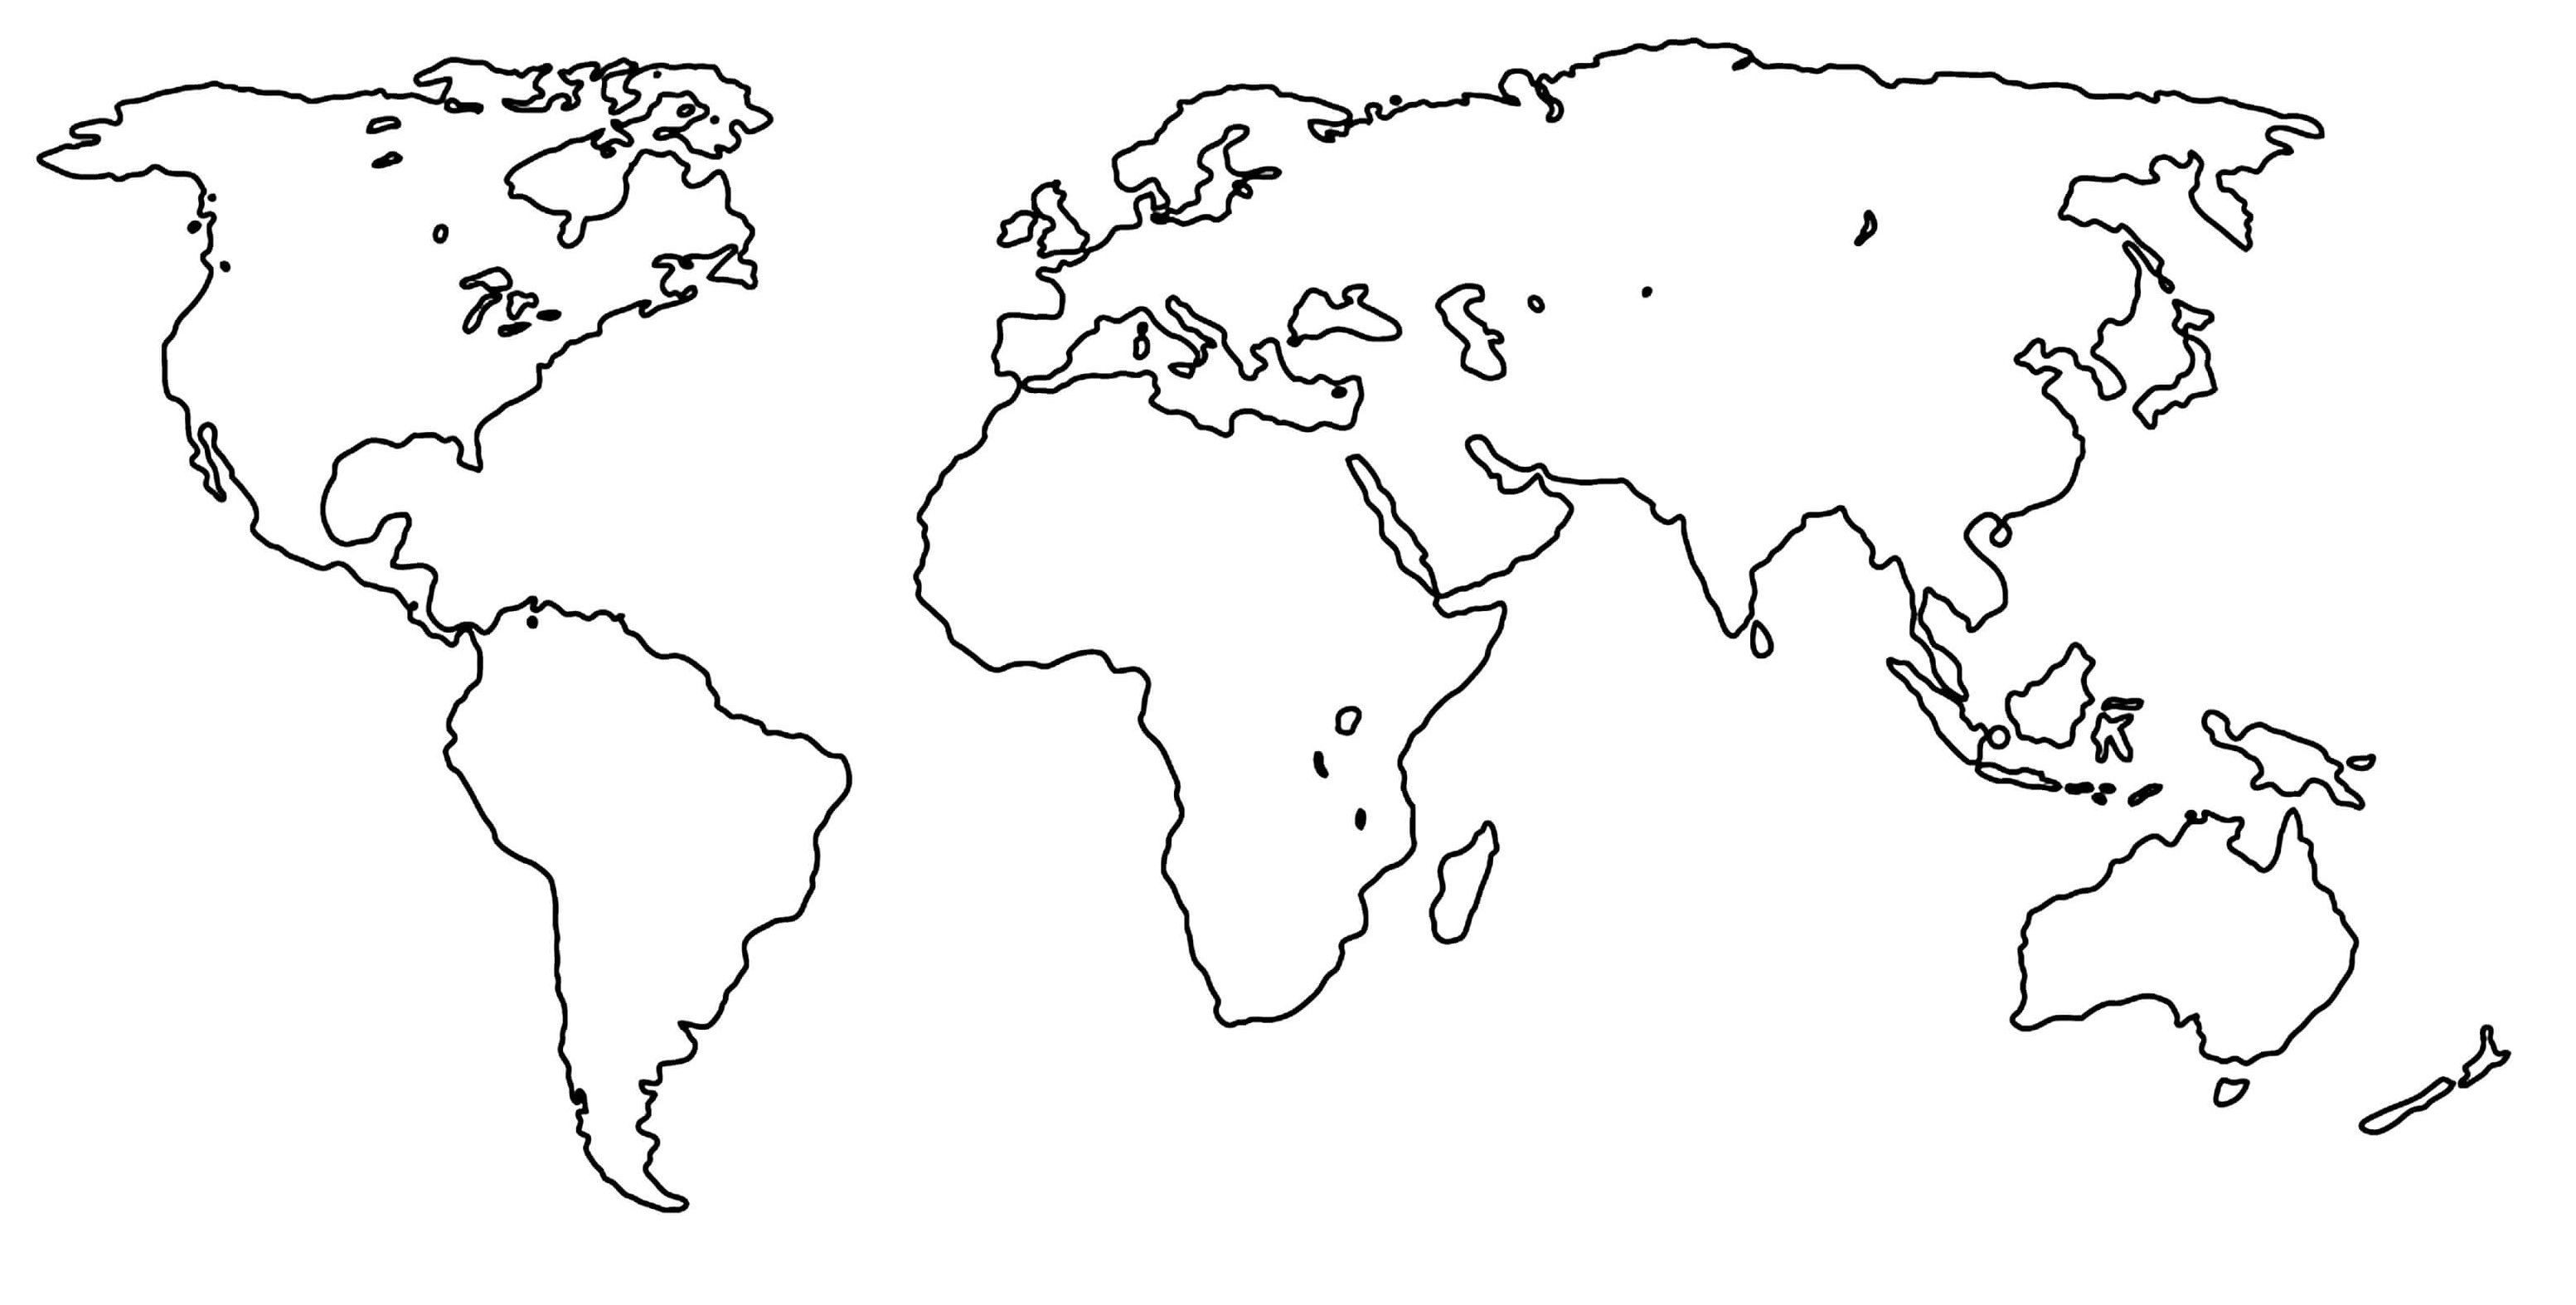 World Map Outline Png - AbeonCliparts | #754354 - PNG Images ...